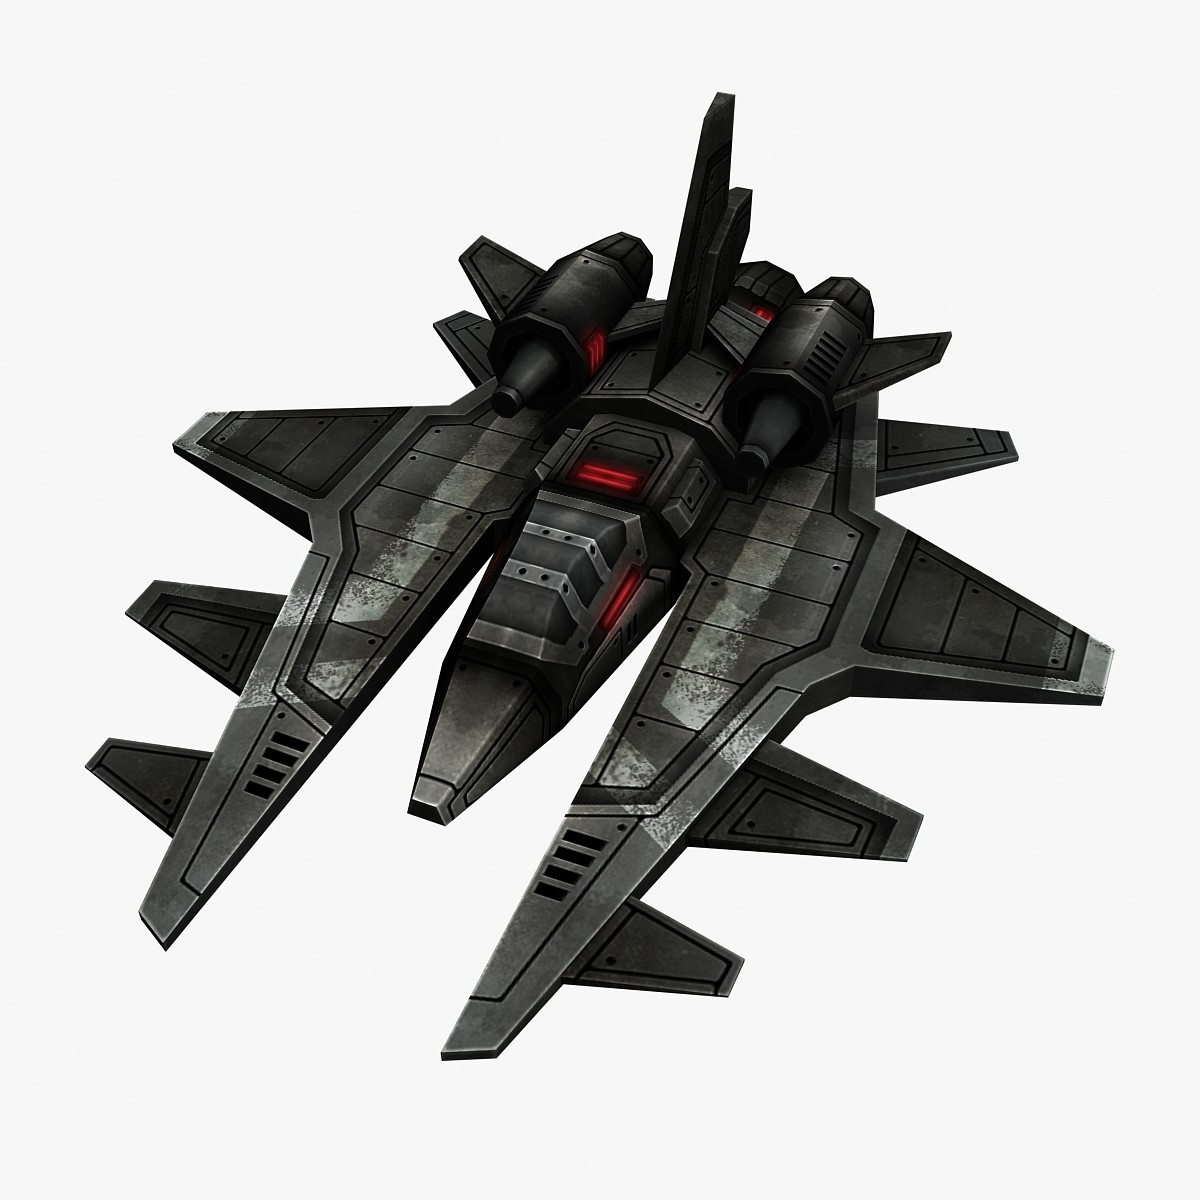 sci_fi_space_fighter_3_preview_0.jpg